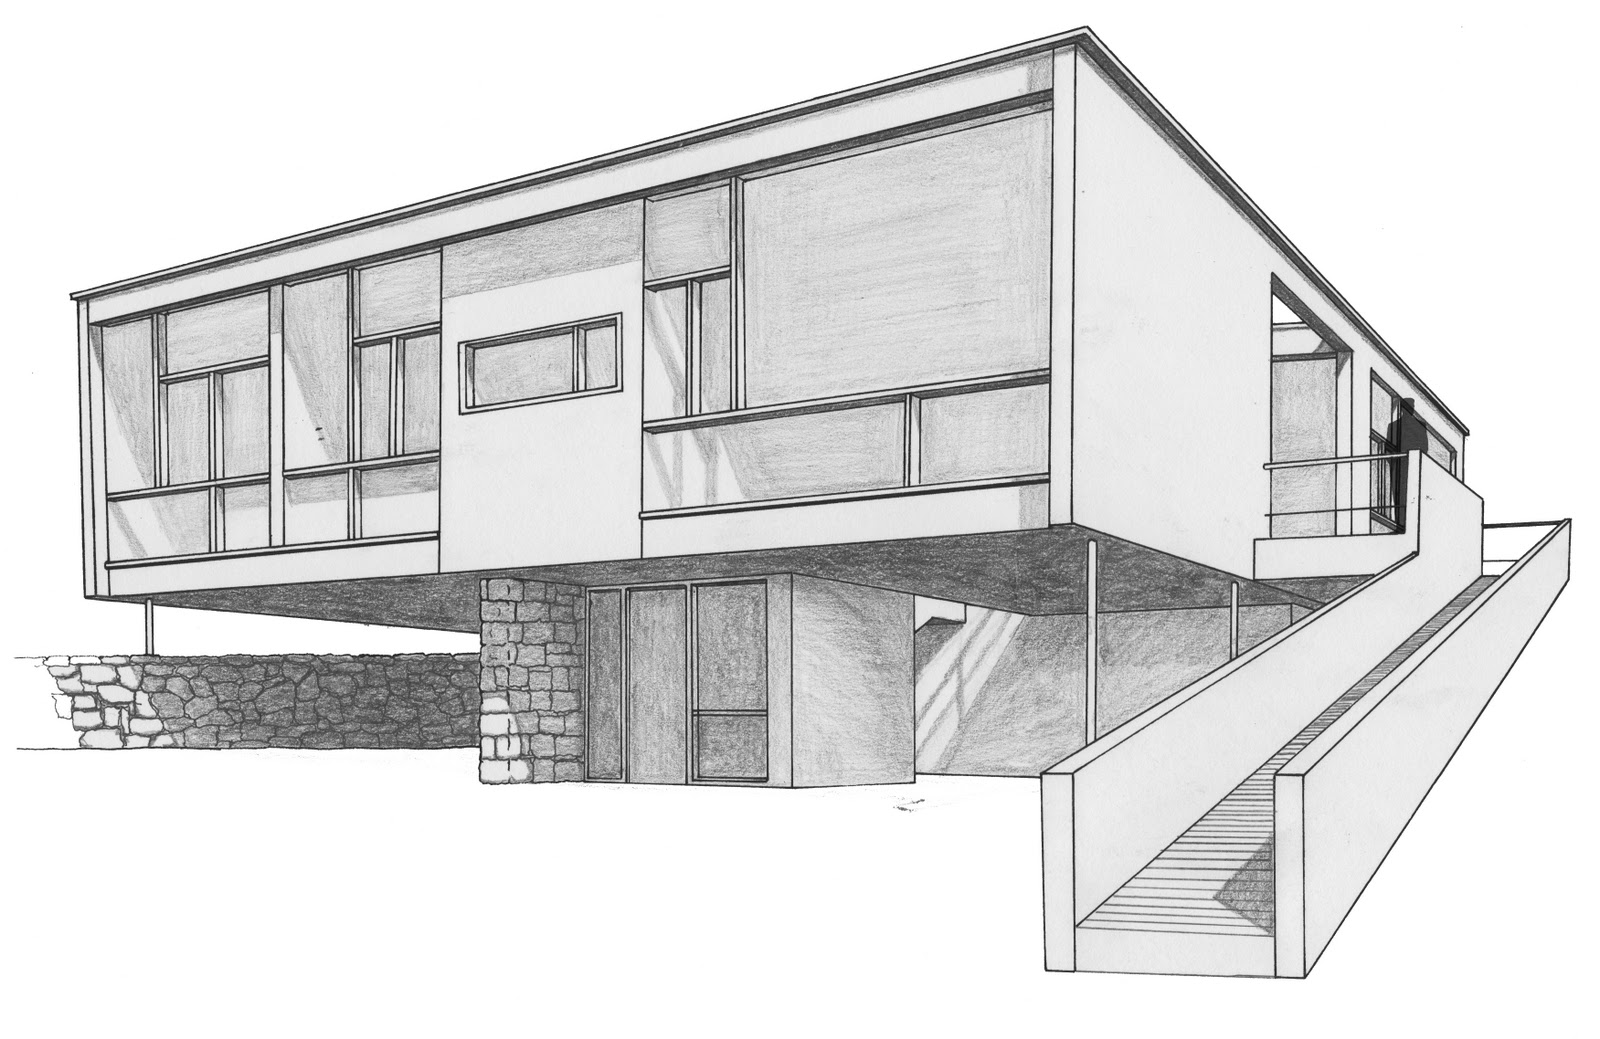 Todd norcott draw it for Architecture modern house design 2 point perspective view